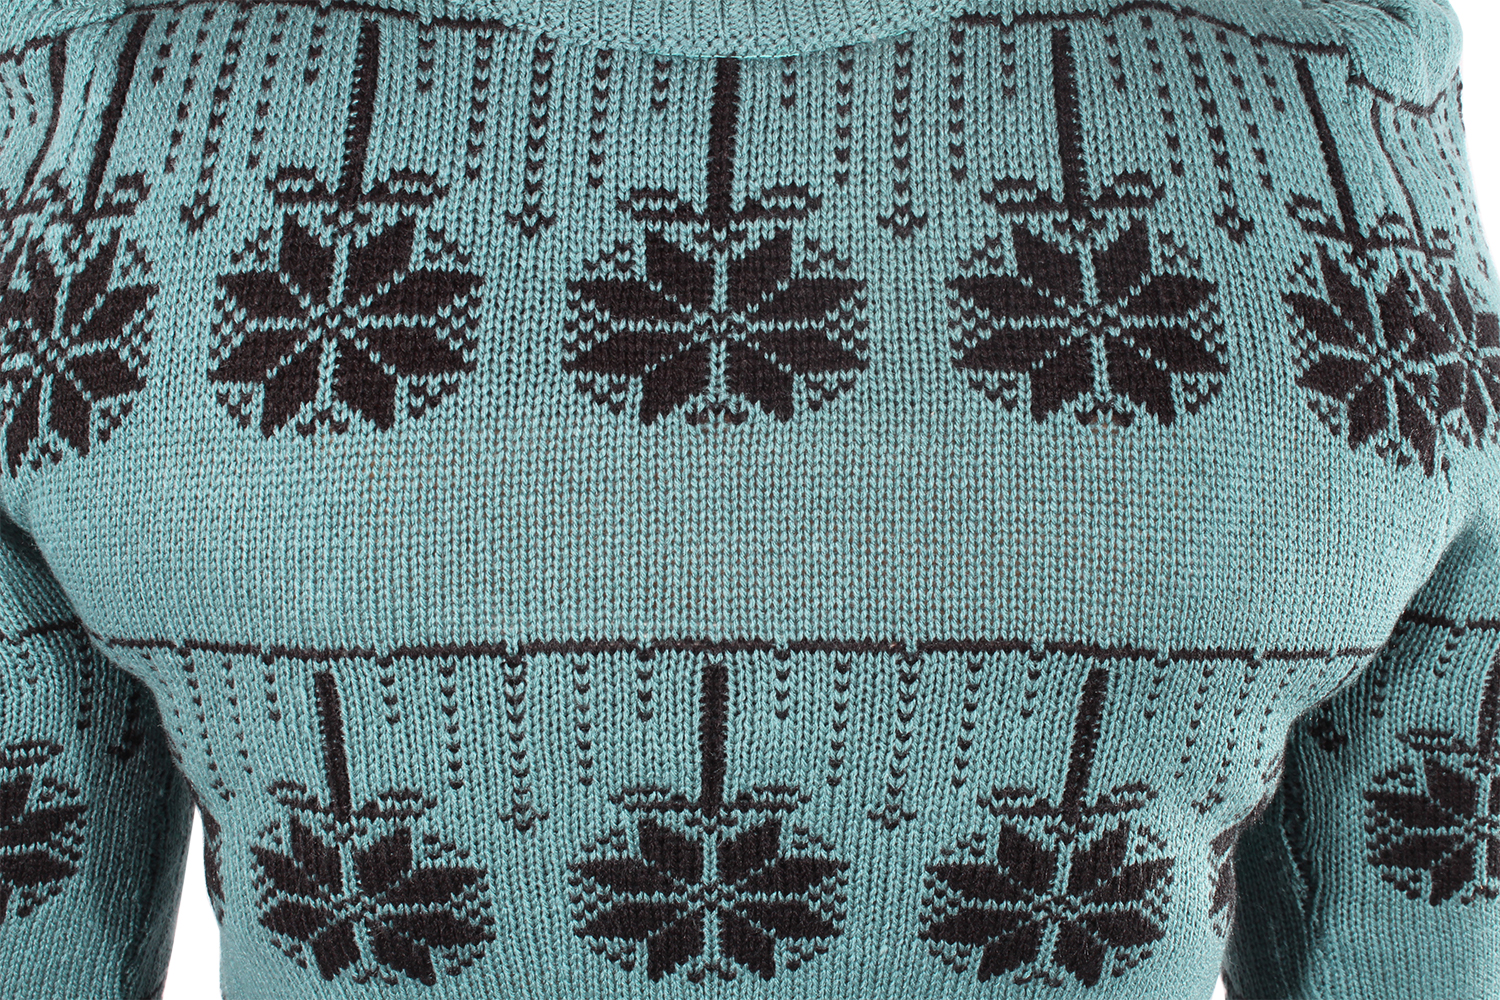 Christbaumkugeln Retro.40s 50s Retro Christbaumkugeln Pullover Strickpulli Norweger Jumper